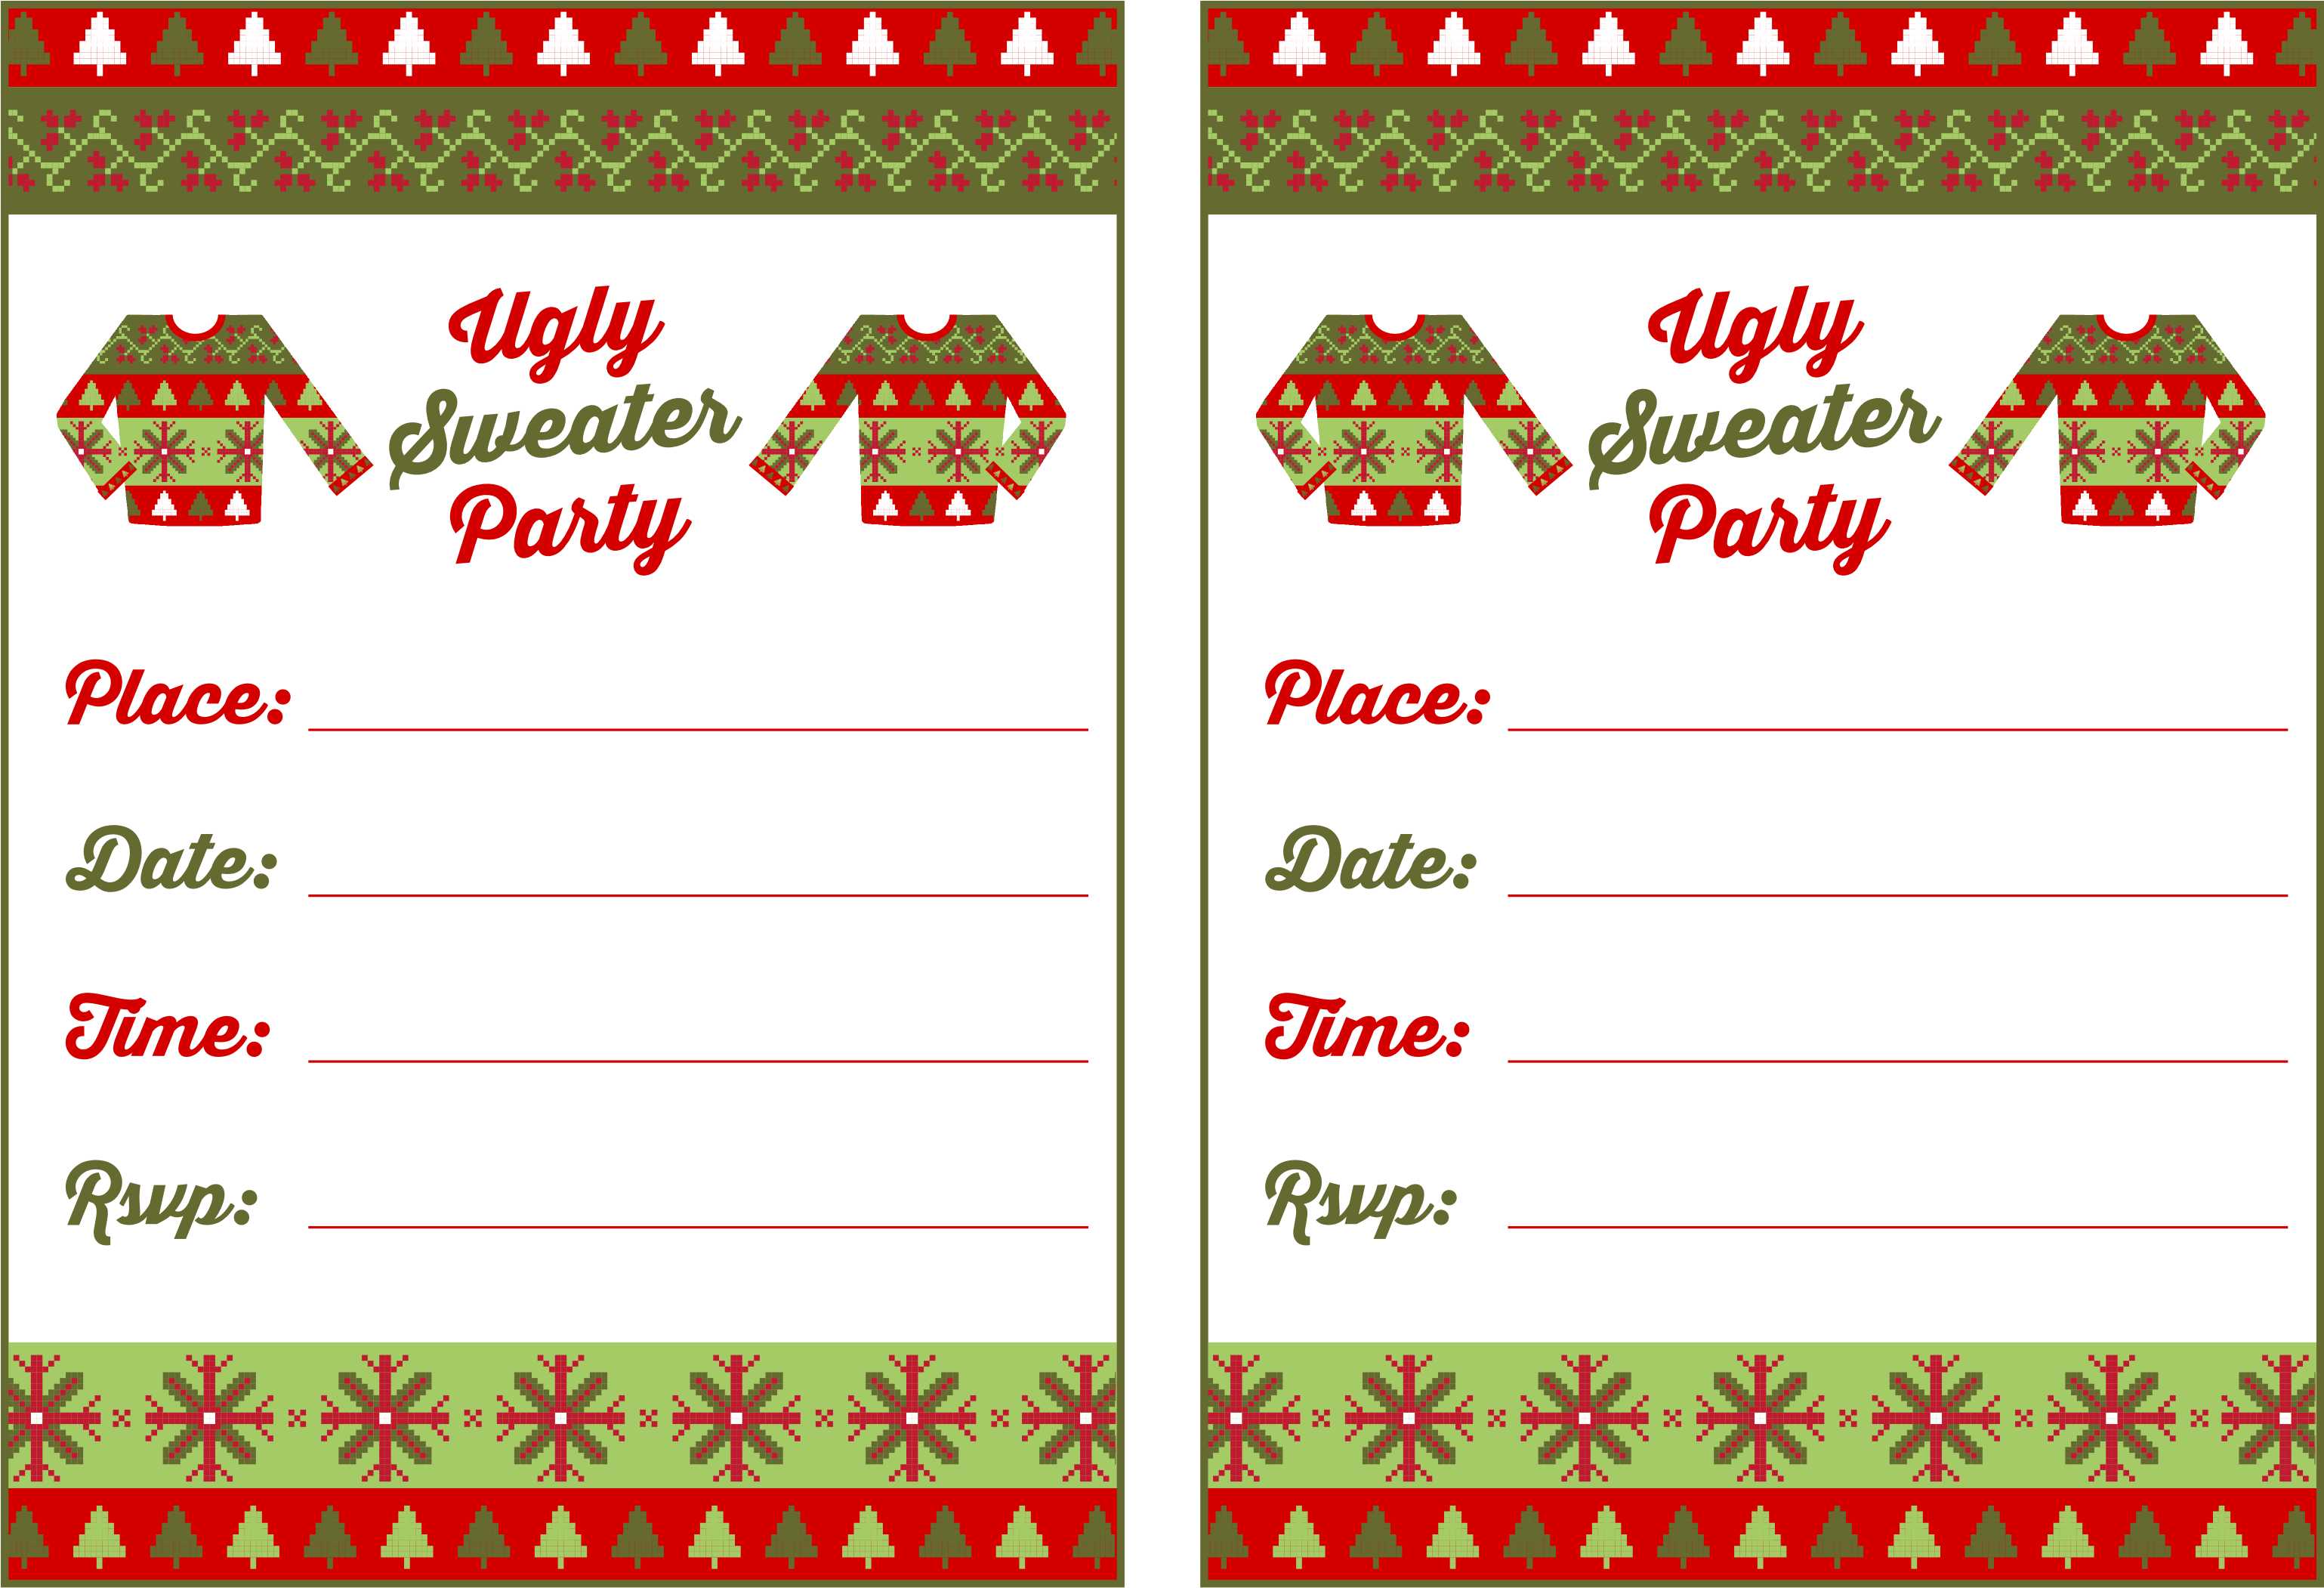 It's just a picture of Free Printable Christmas Invitations inside clipart